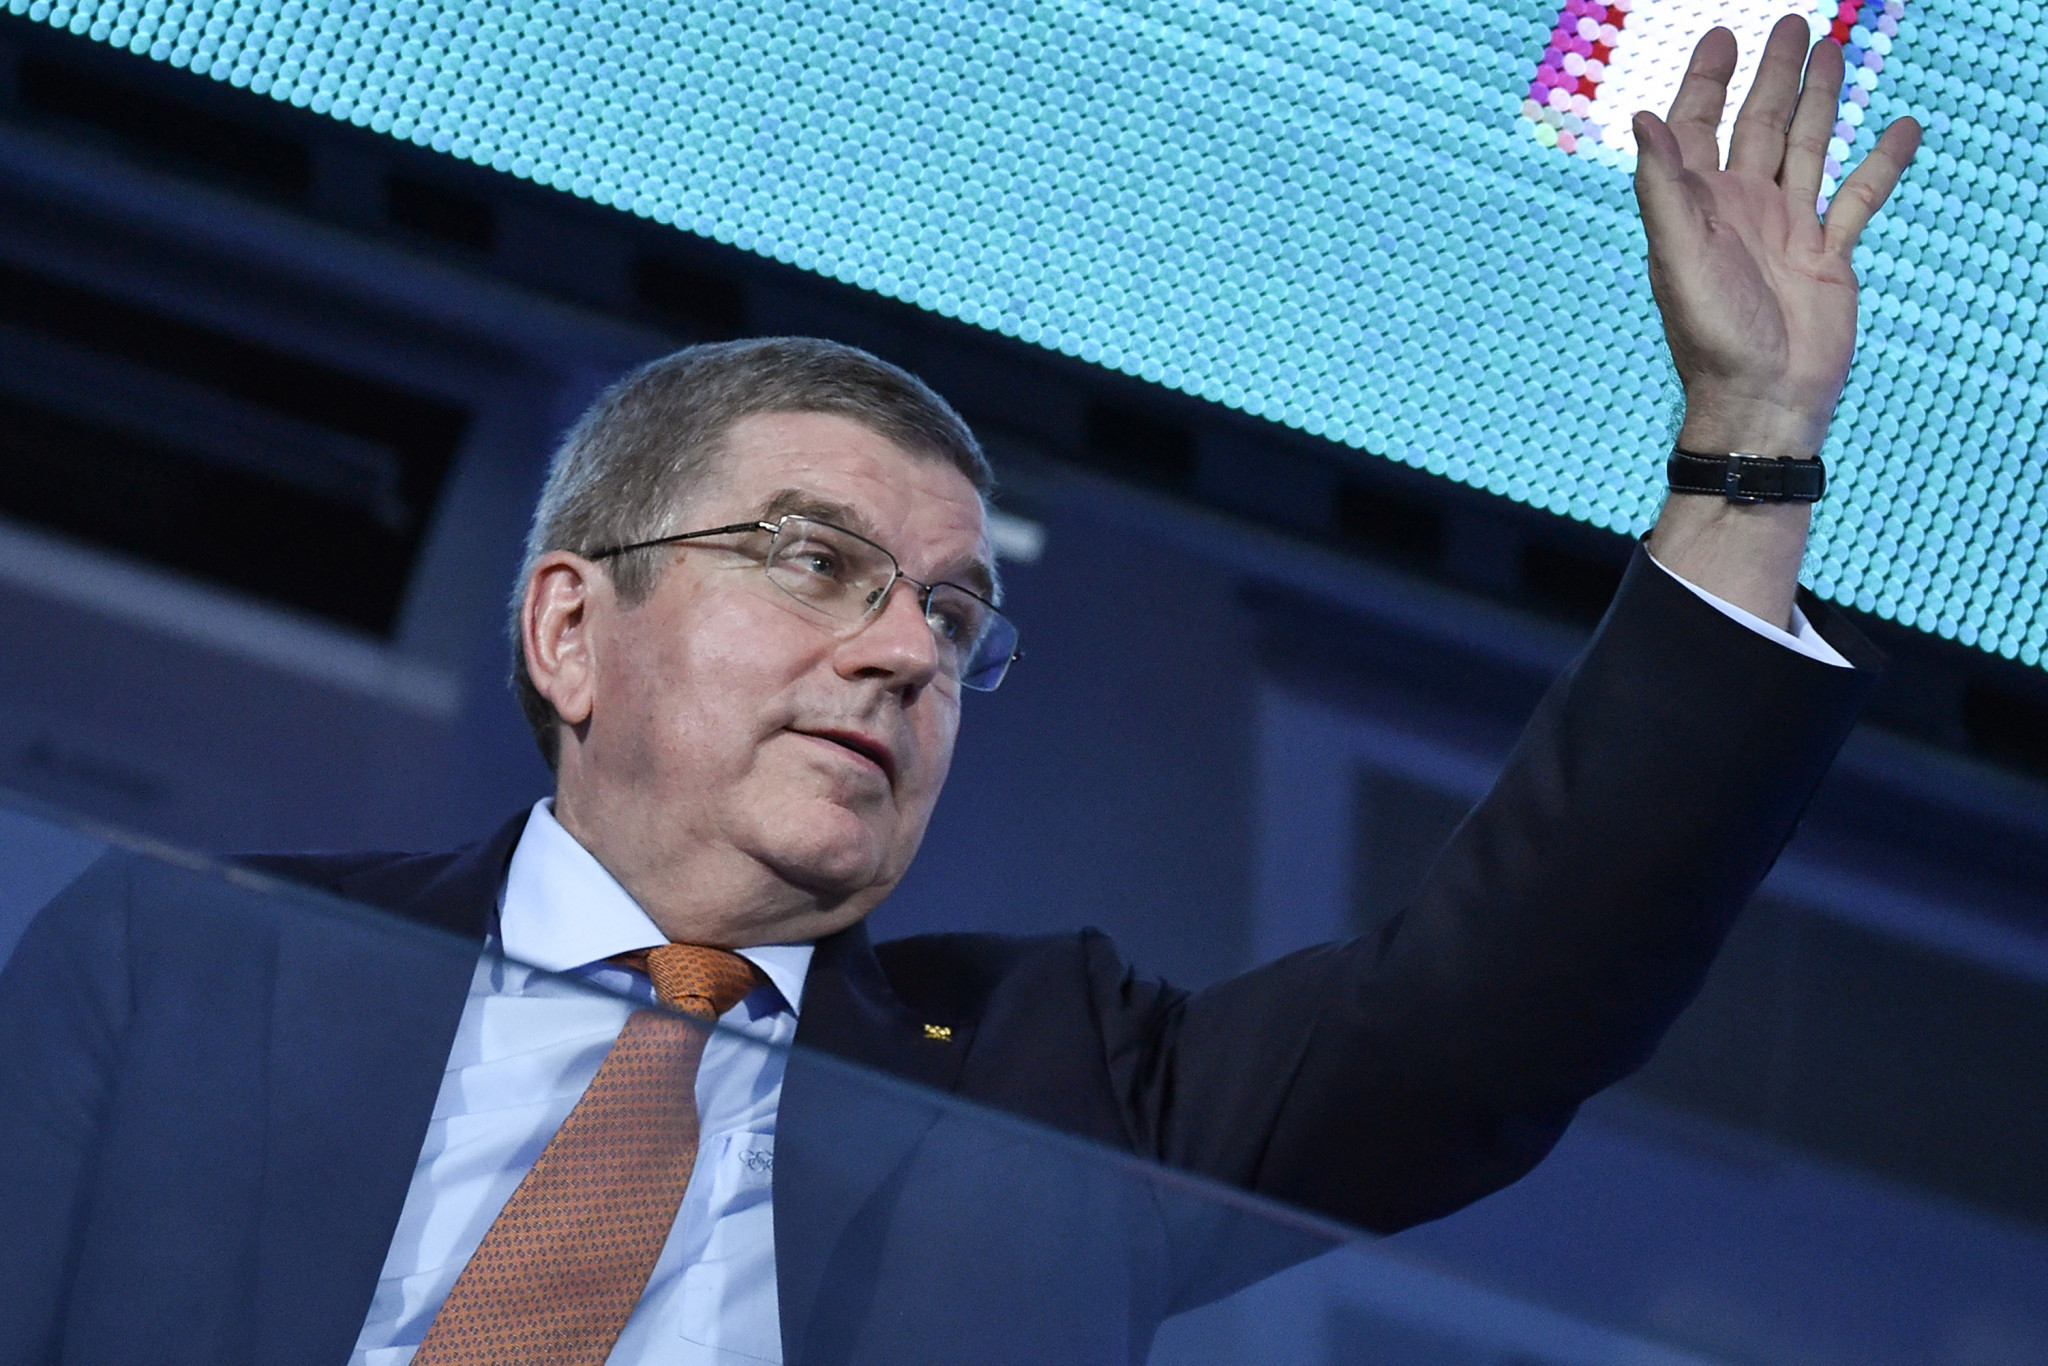 Thomas Bach and Vladimir Putin attend Closing Ceremony of European Games in Minsk